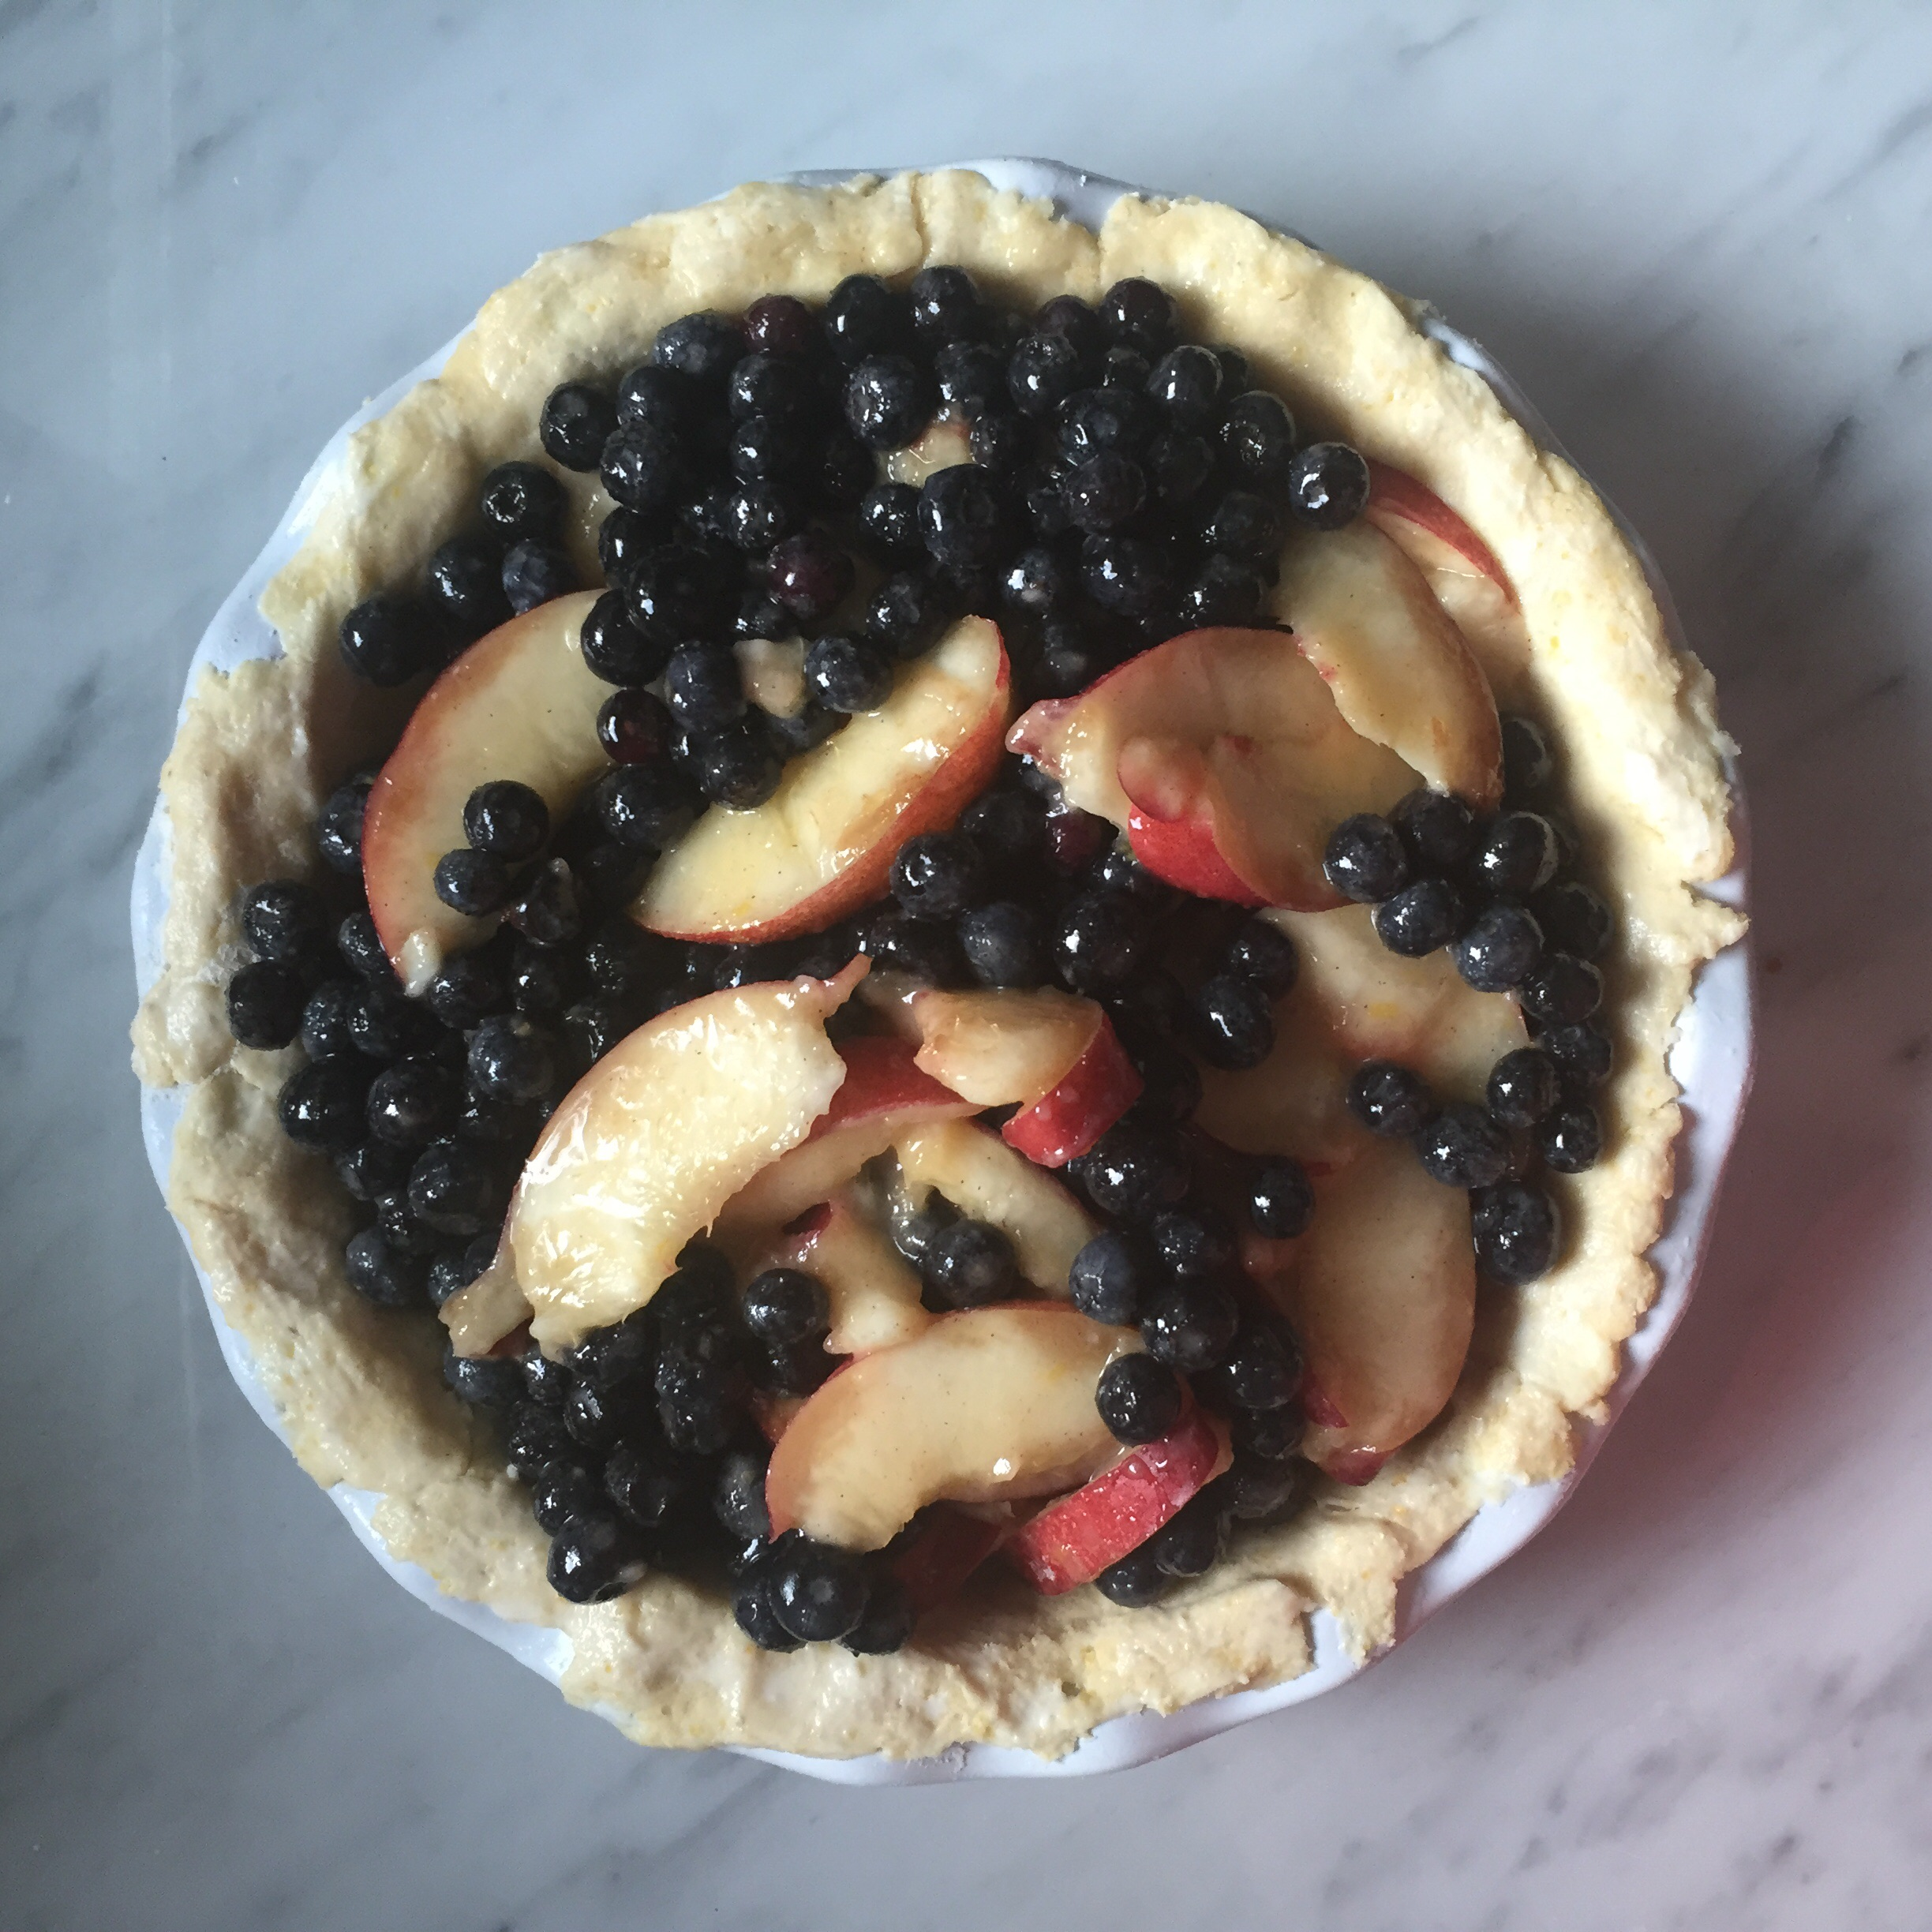 This is the pie I'm working on now- blueberry nectarine with cornmeal crust.